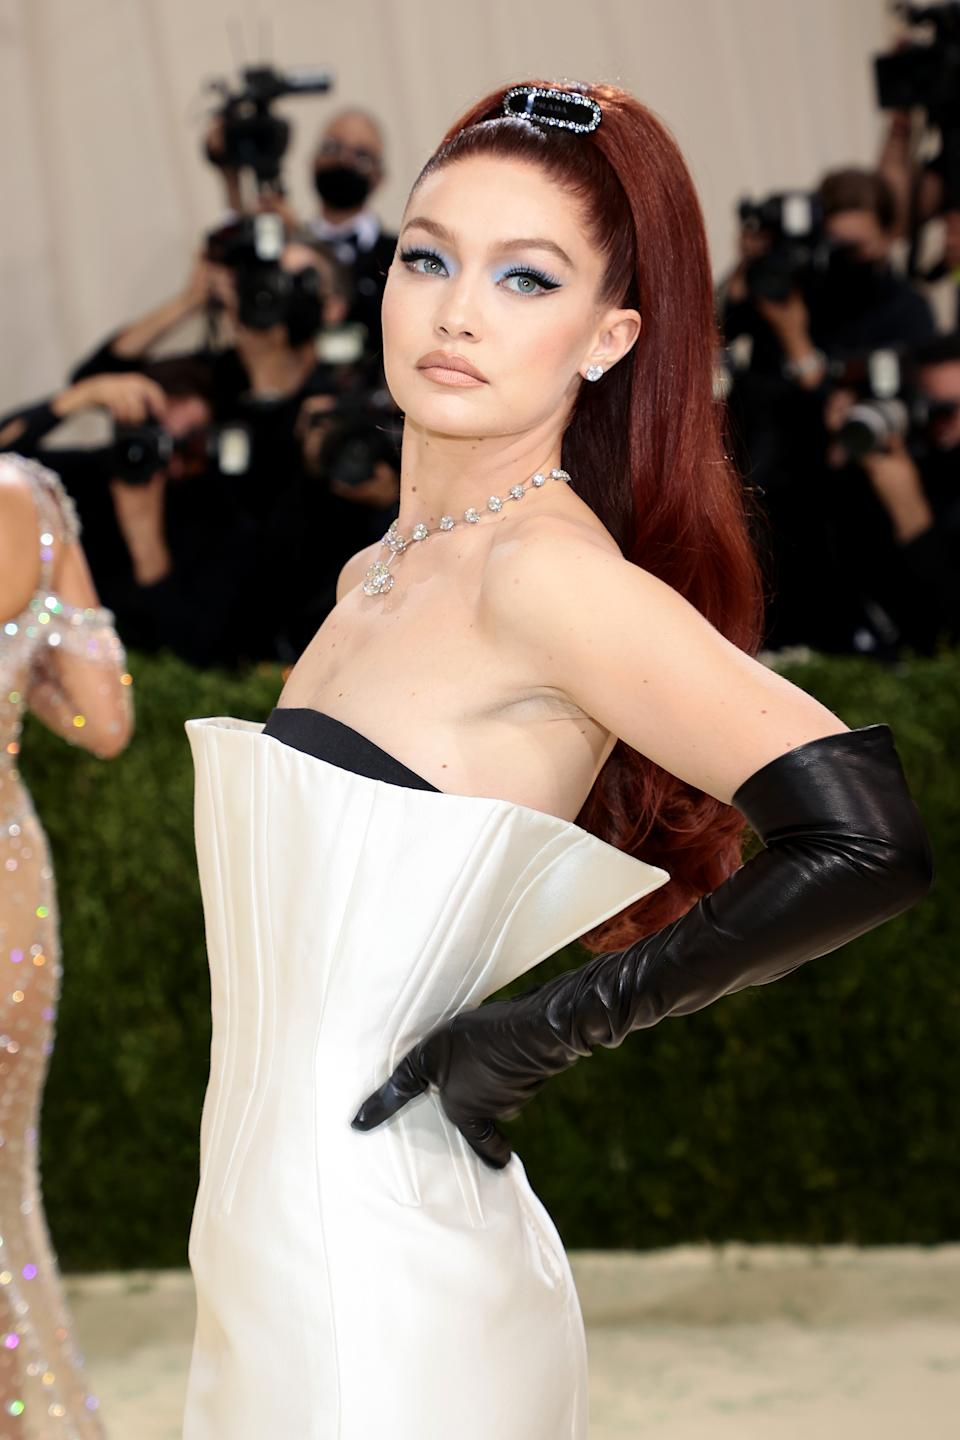 Gigi Hadid's makeup artist used Maybelline makeup products for the model's 2021 Met Gala look. (Image via Getty Images)